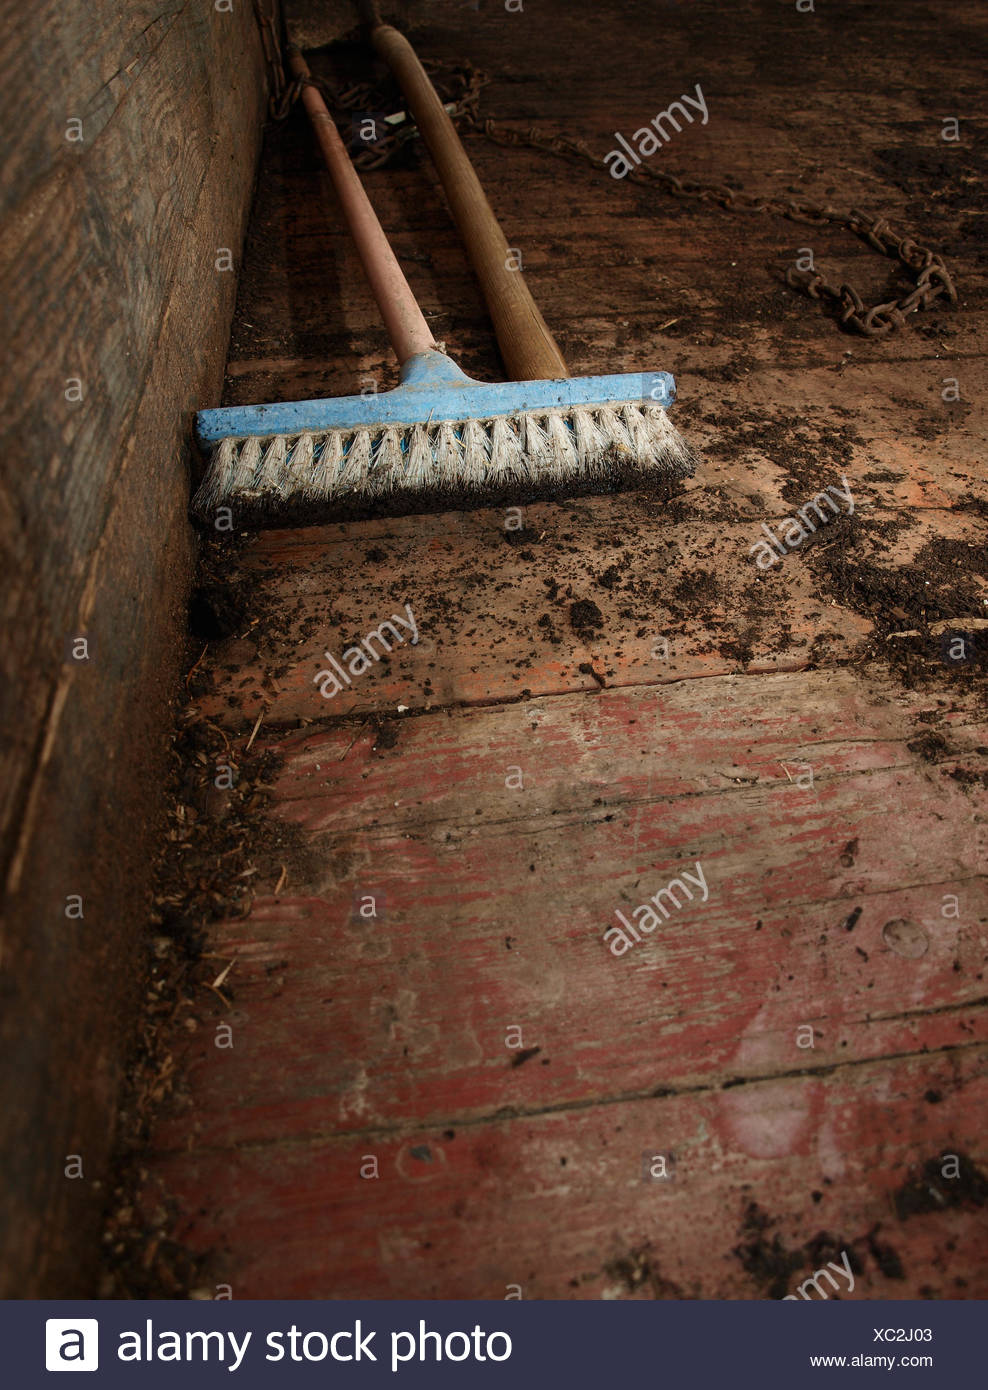 Dirty Broom Cleaning Floor - Stock Image